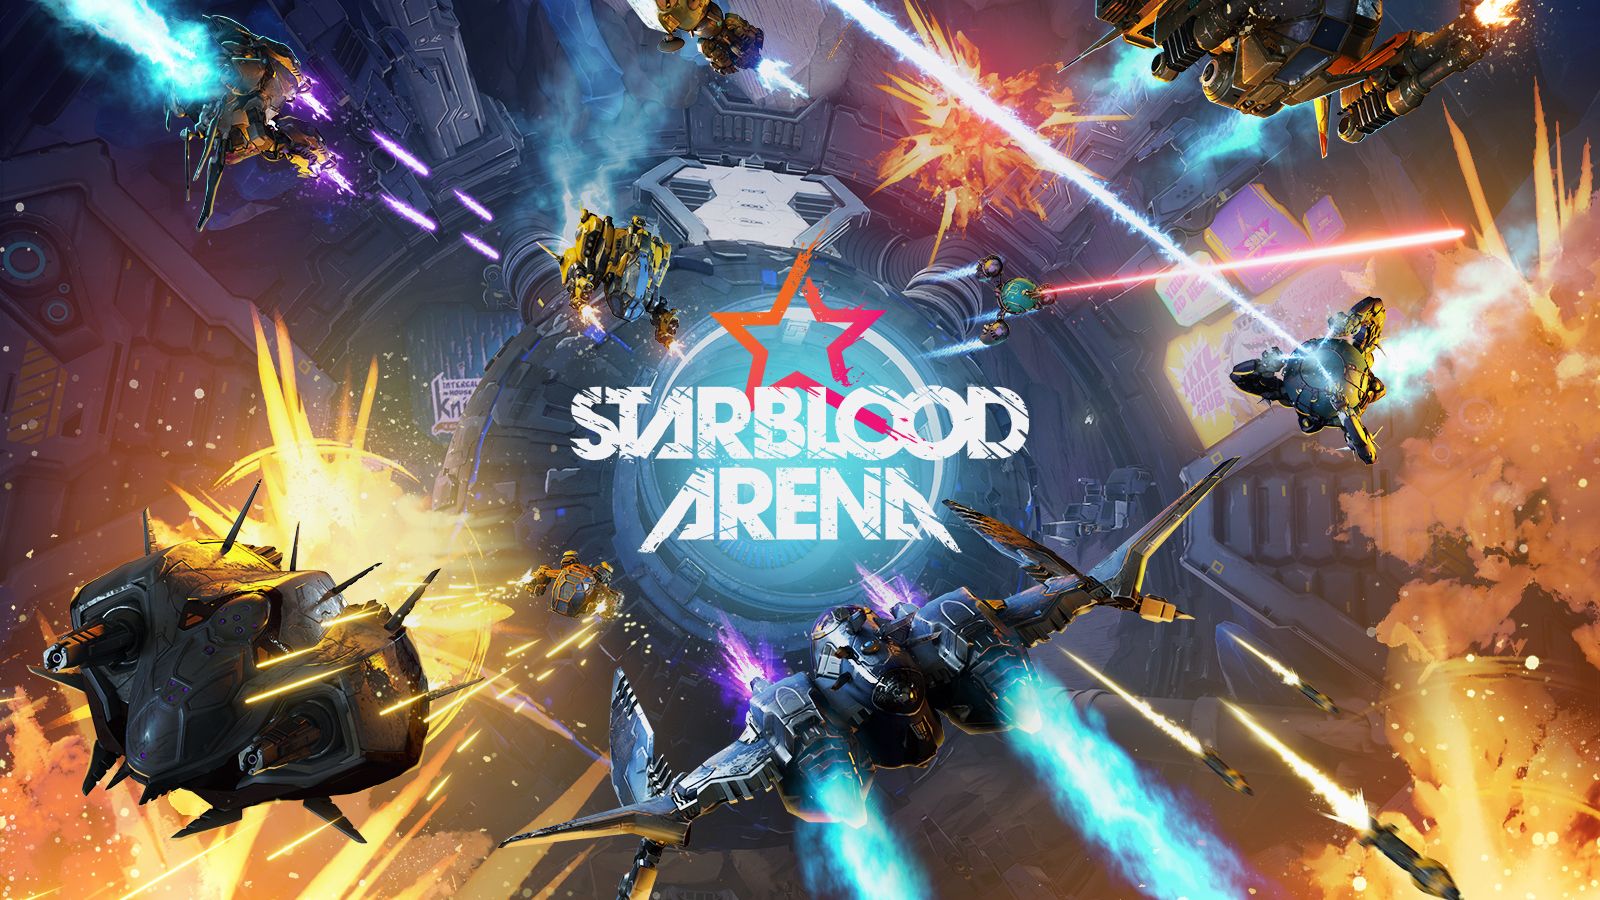 Playstation plus free games for January 2018 Starblood-arena-listing-thumb-01-ps4-us-12dec16?$Icon$